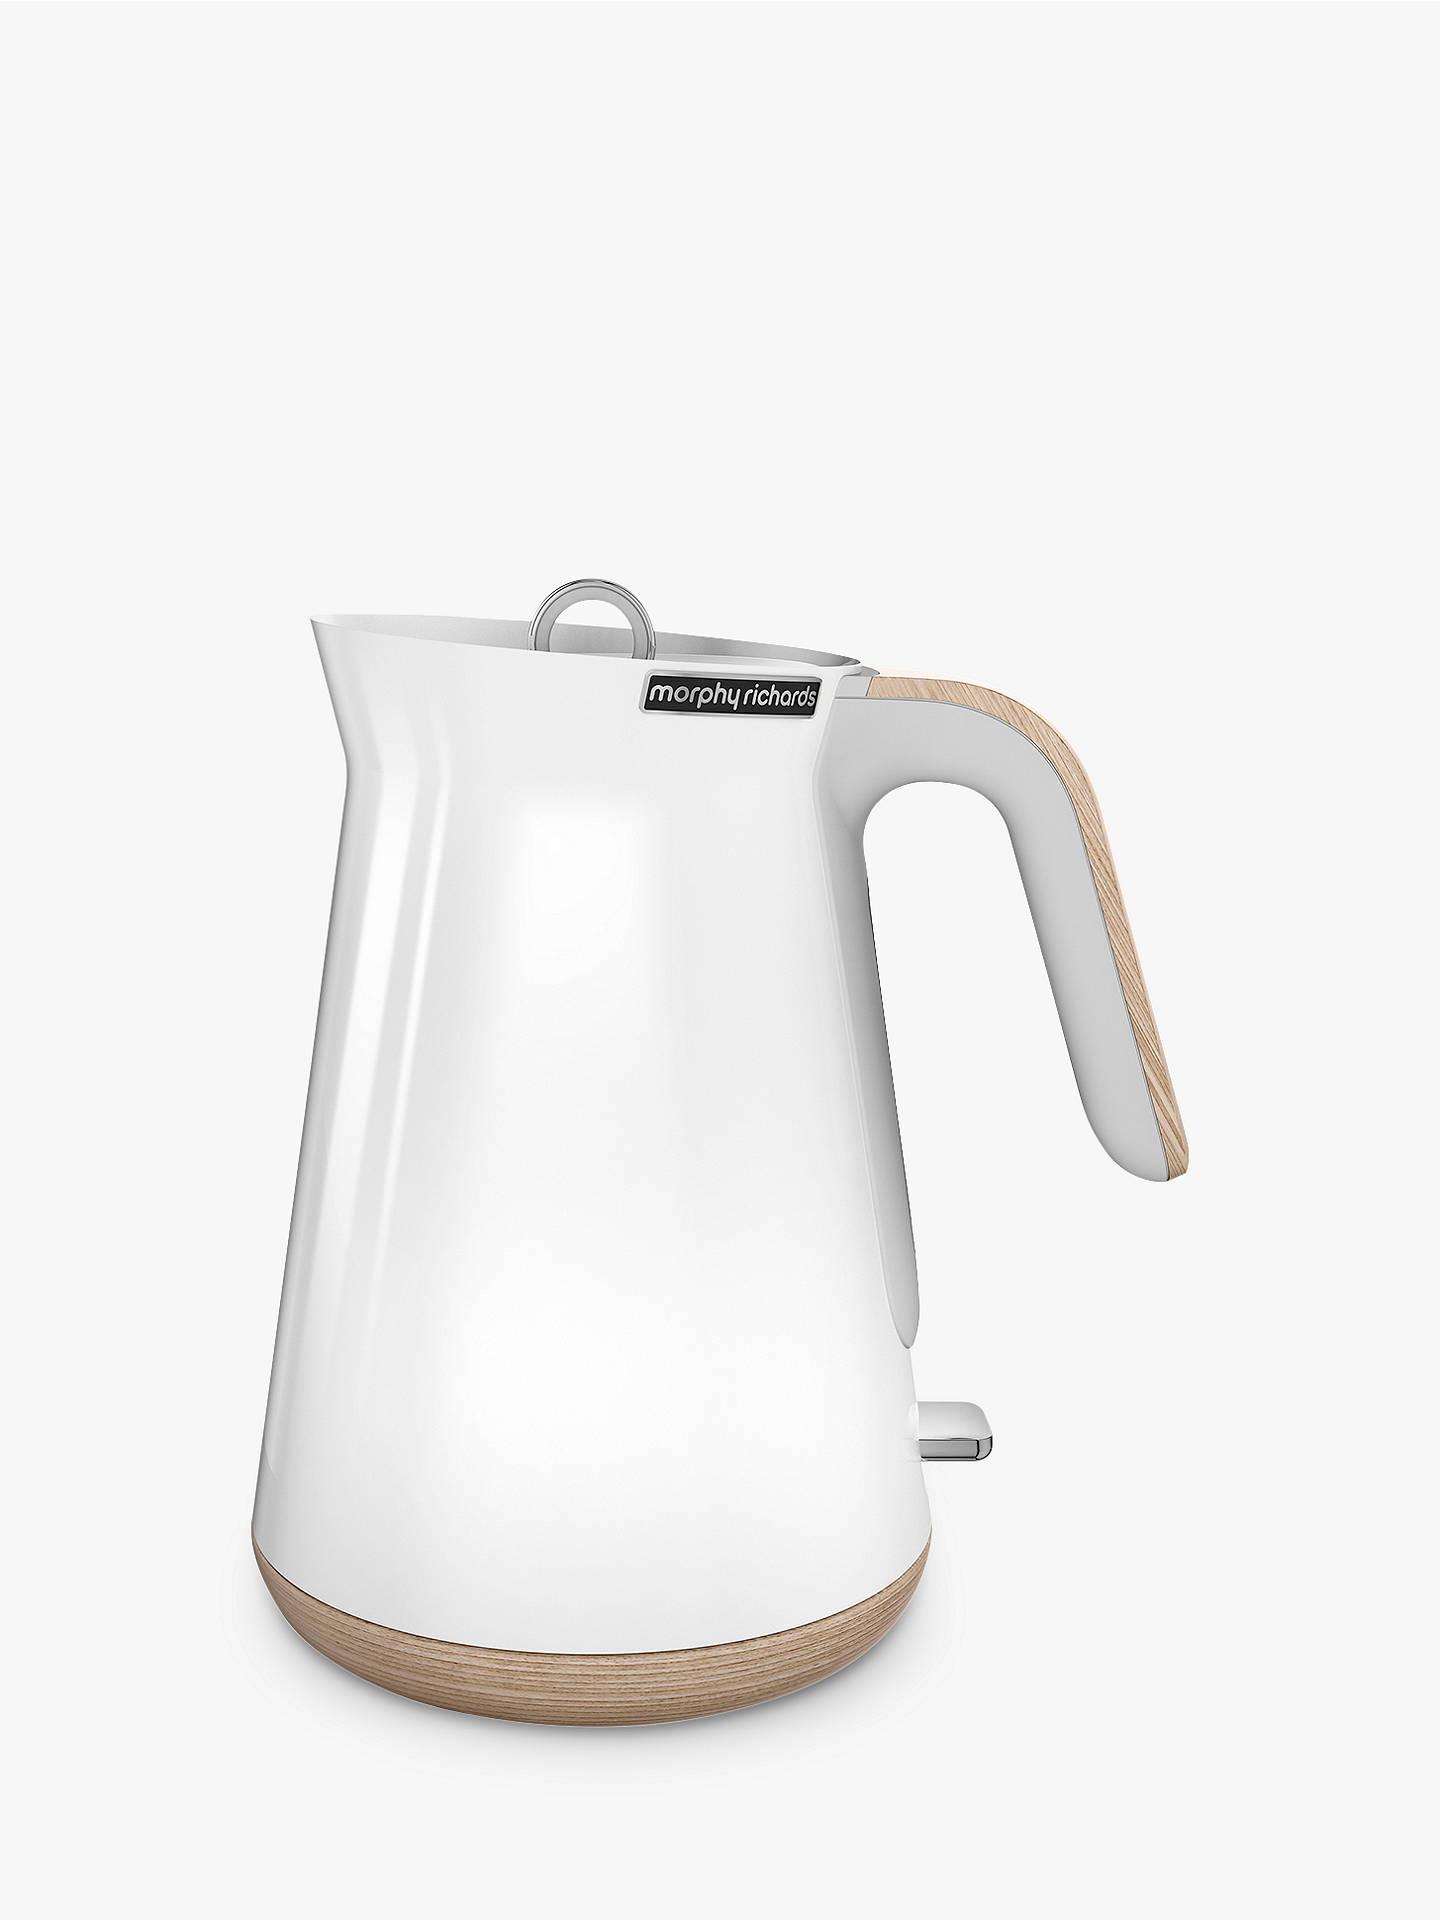 Morphy Richards Aspect Kettle White Wood At John Lewis